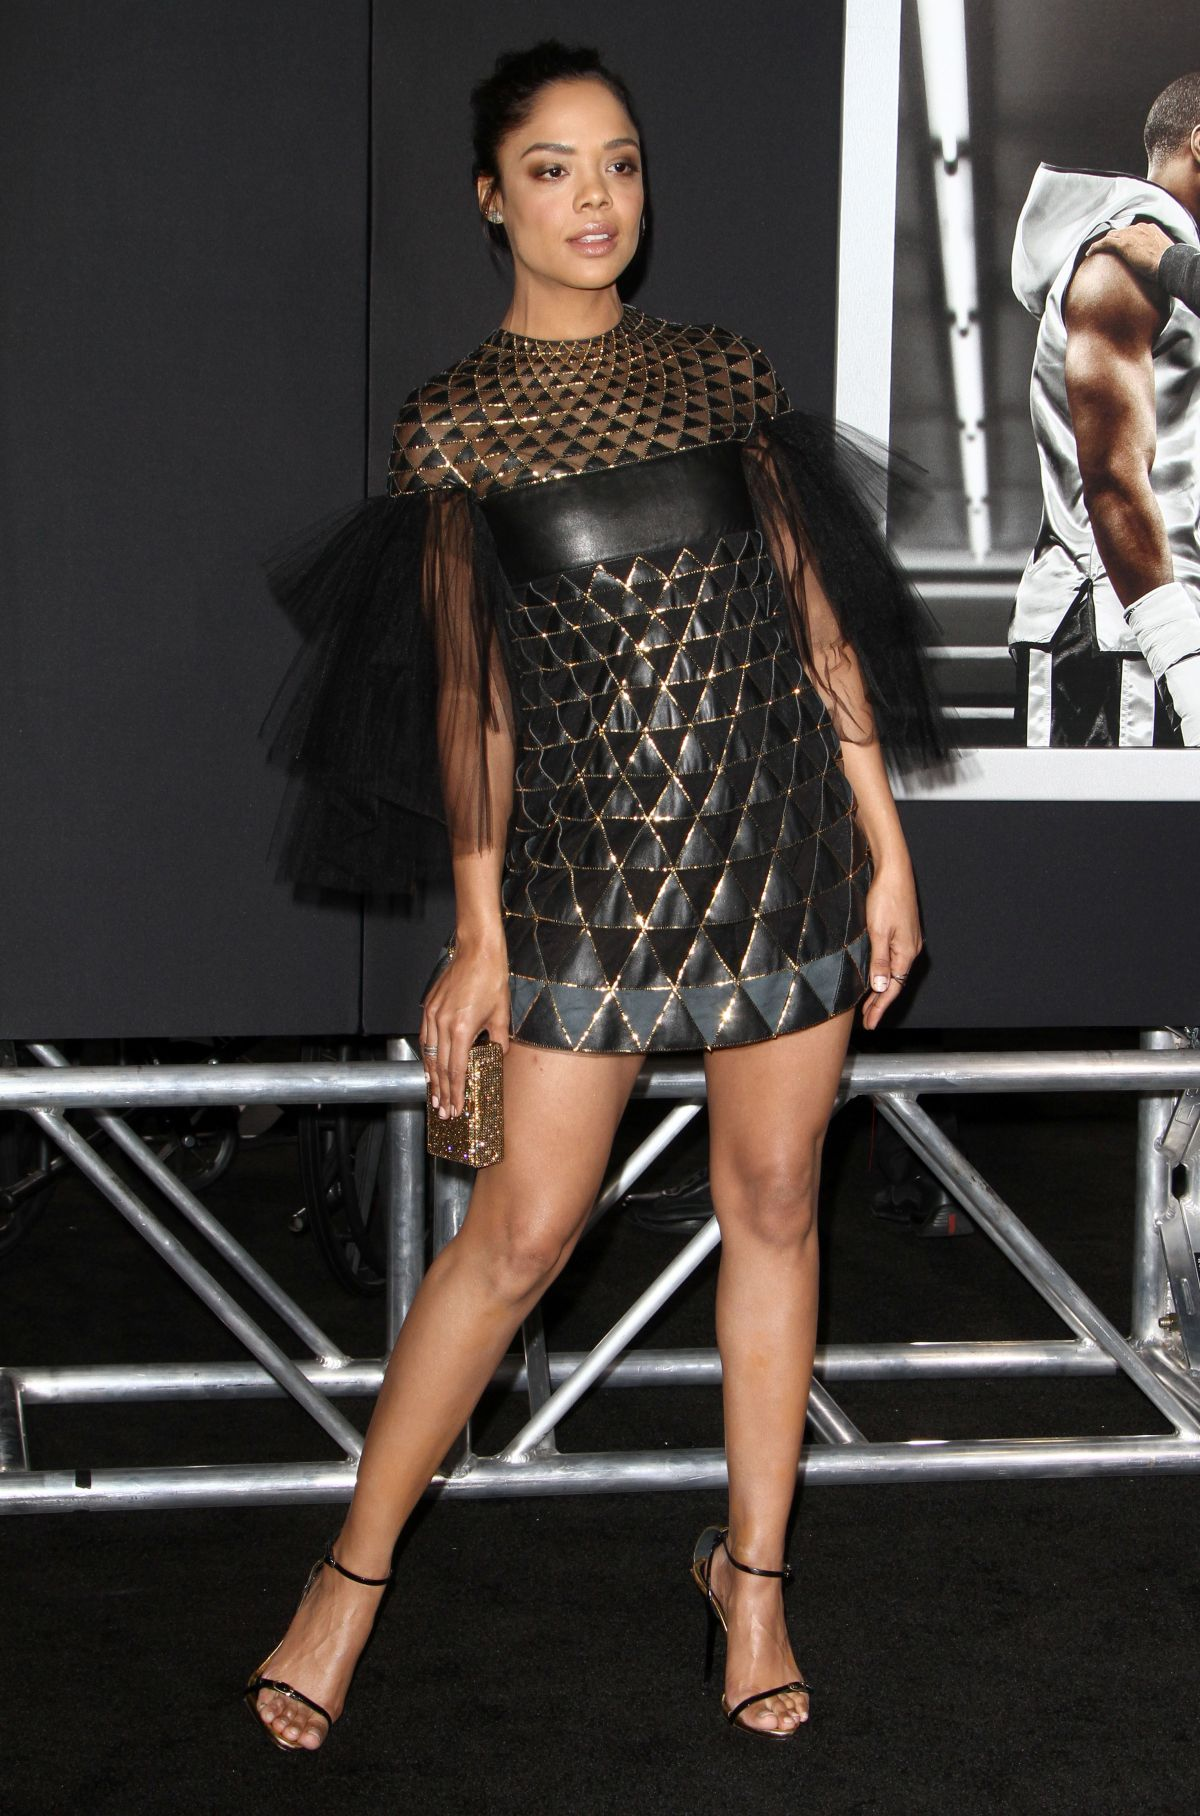 TESSA THOMPSON at Creed Premiere in Westwood 11/19/2015